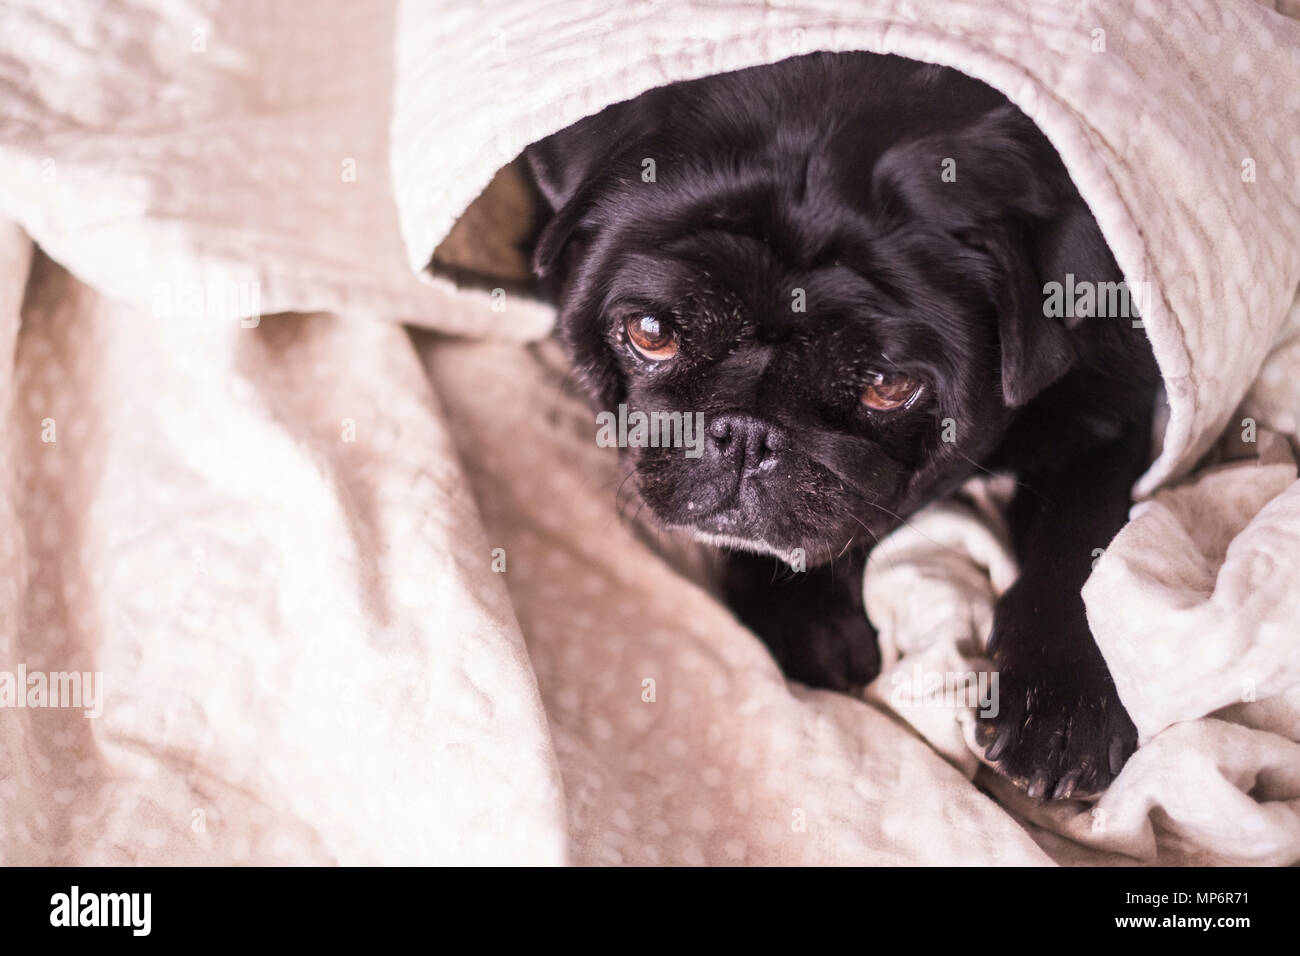 pug dog is having fun playing under the blanket. Lying on a brown couch, you look with tender eyes wrapped in a white blanket. - Stock Image